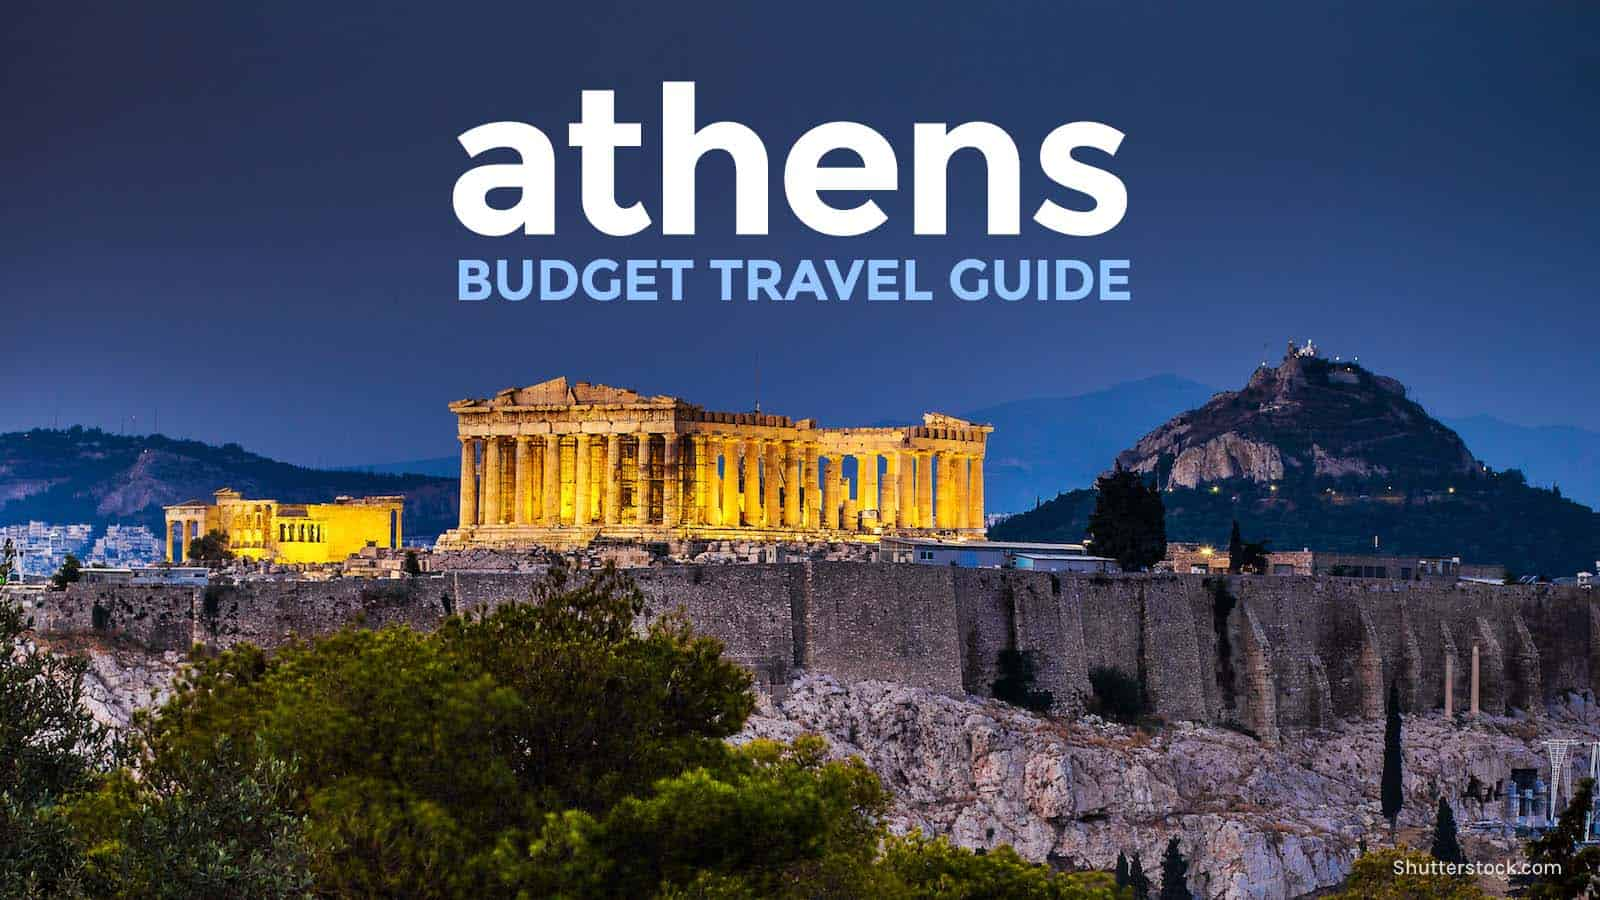 New! ATHENS TRAVEL GUIDE: Budget Itinerary, Things to Do